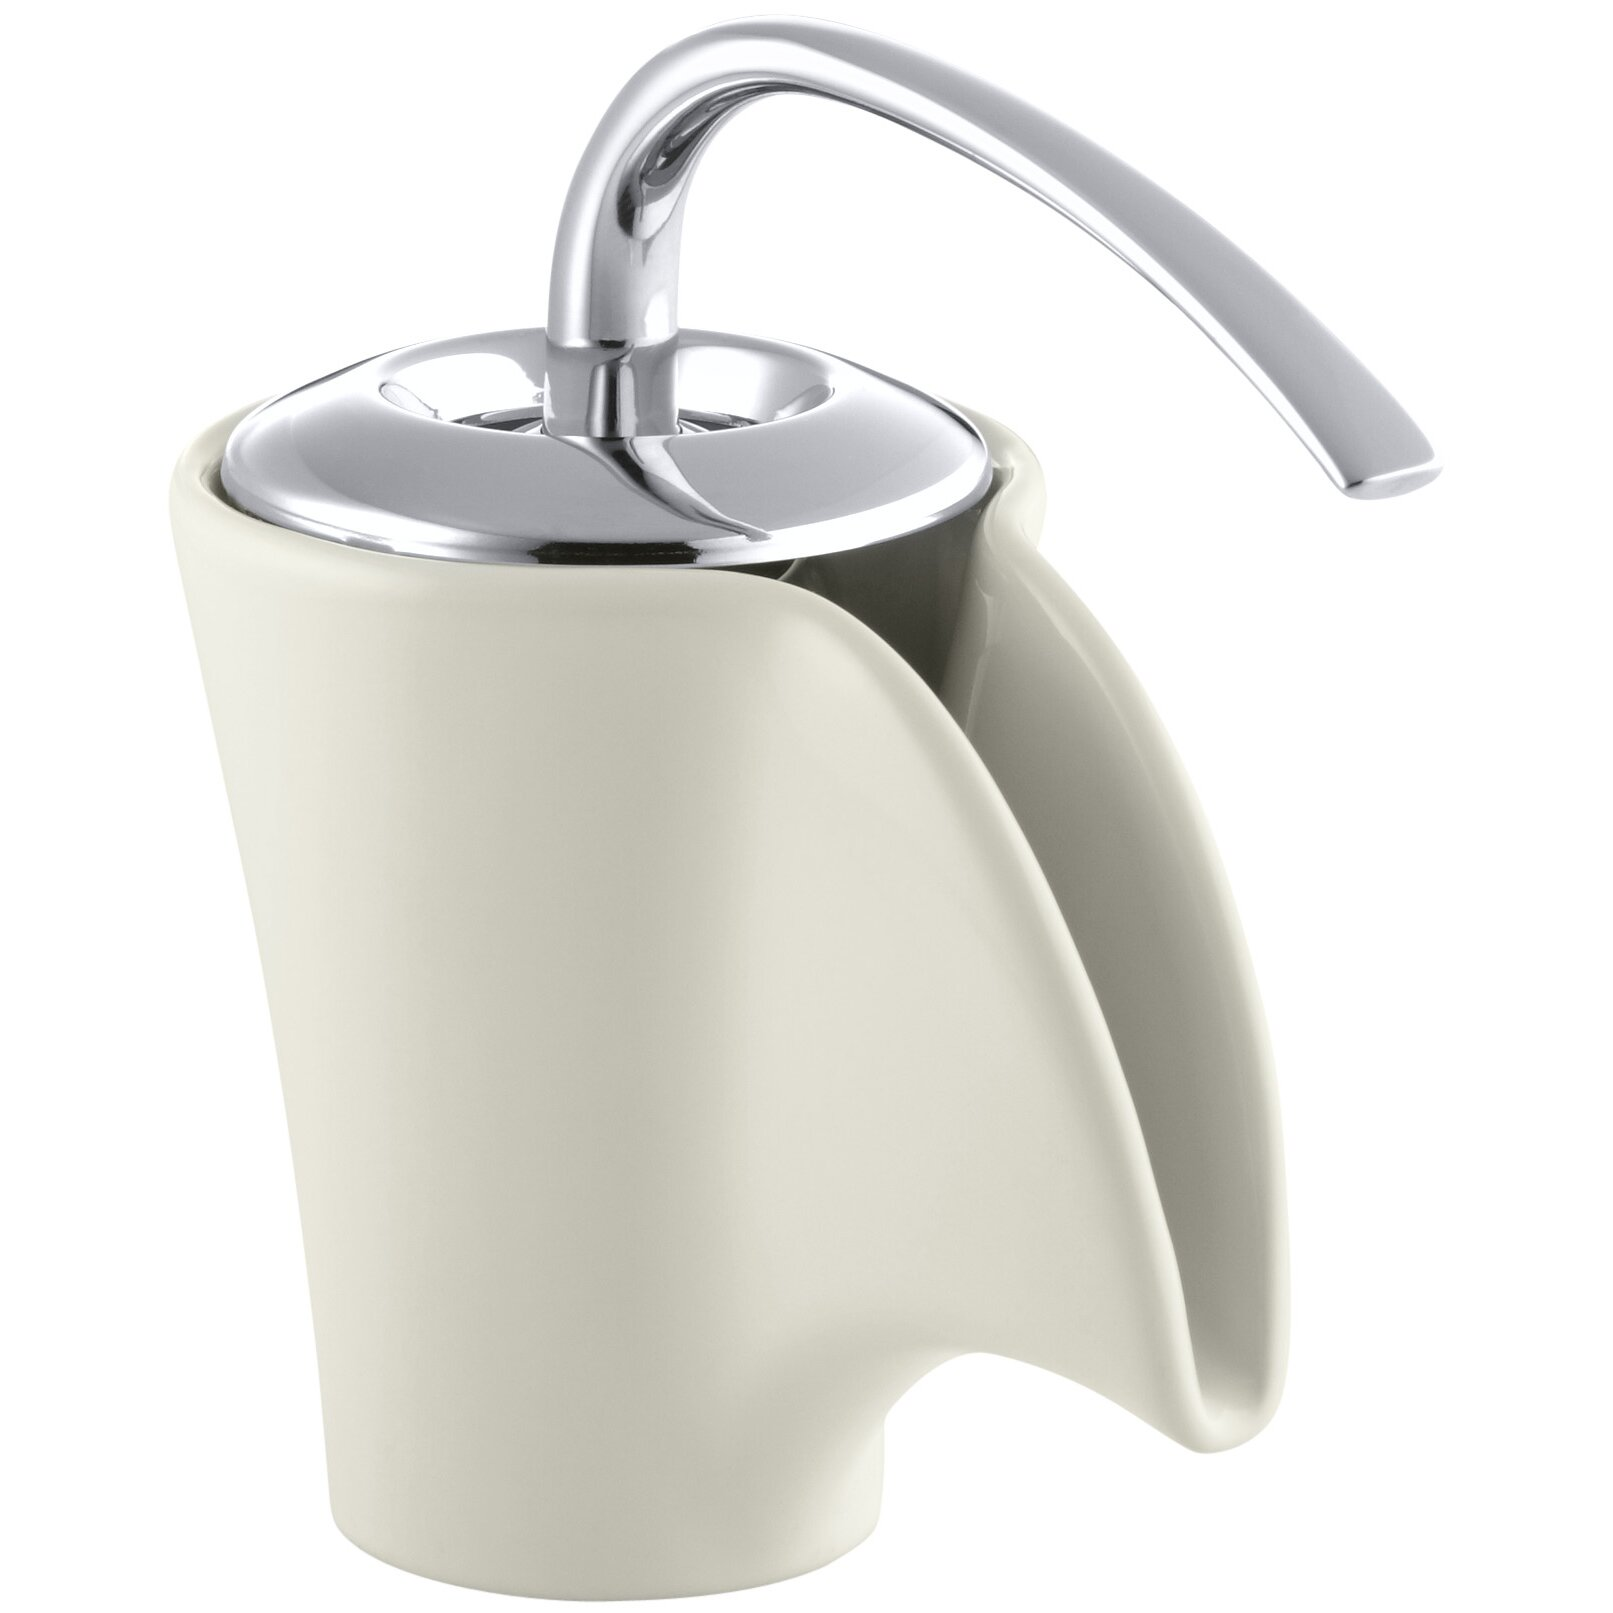 Nice Faucet Warehouse Component - Faucet Products - austinmartin.us